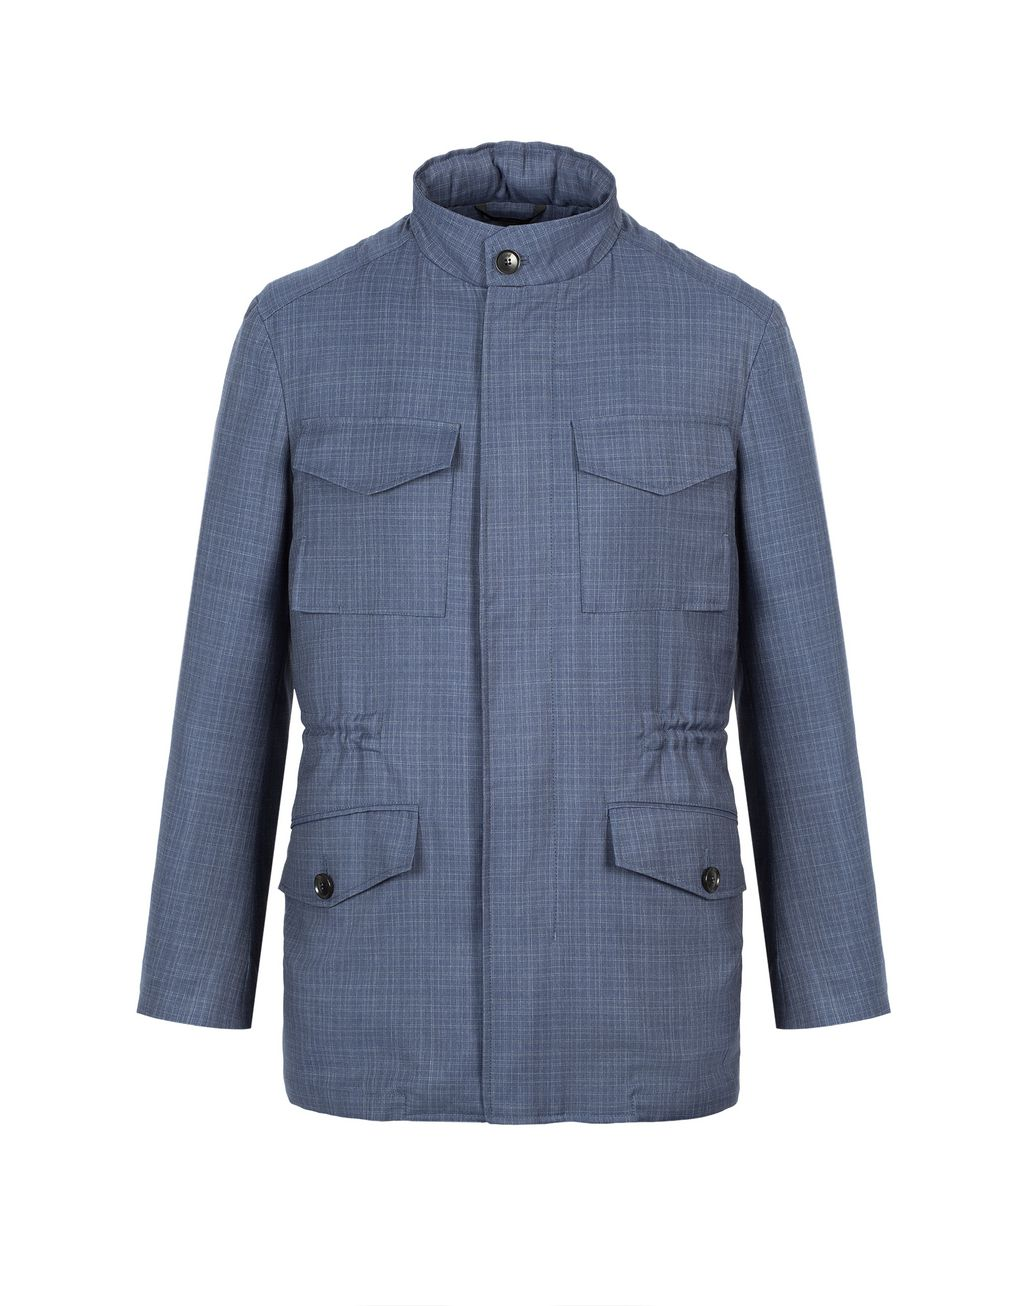 BRIONI Navy Blue Check Trans Seasonal Field Jacket Outerwear Man f